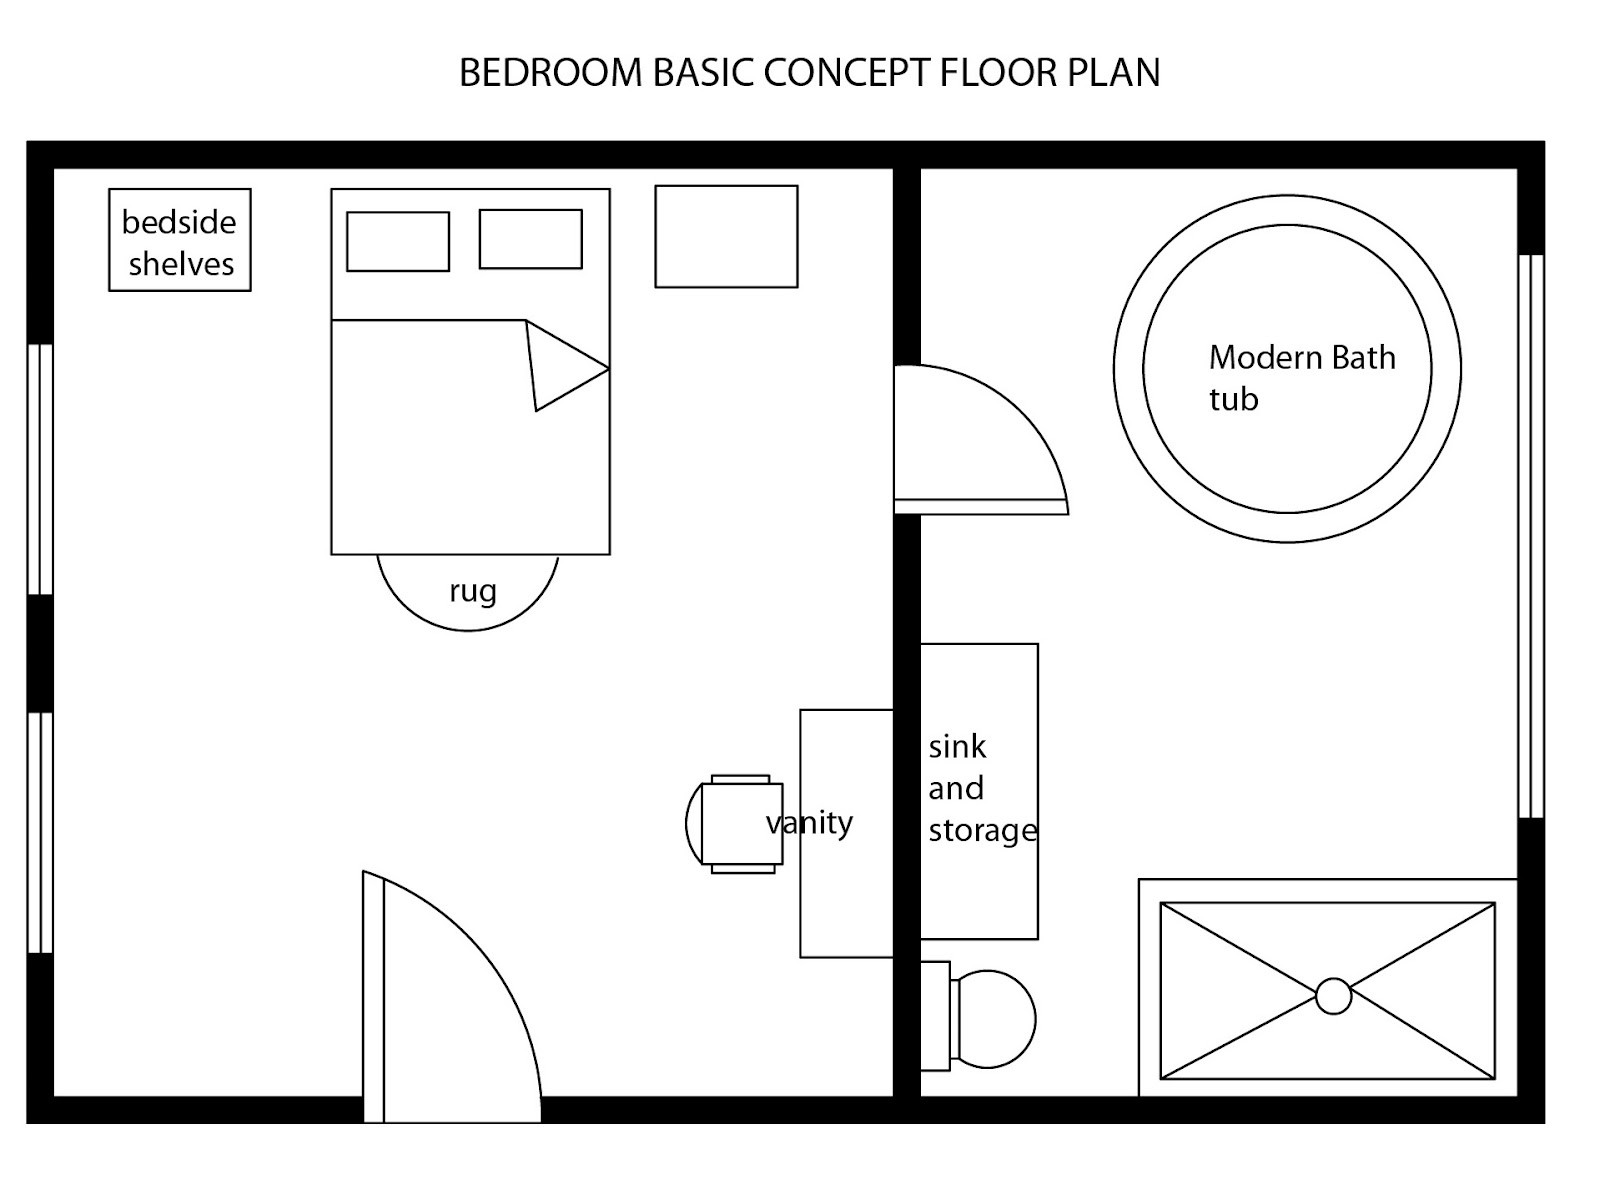 Best ideas about Bedroom Floor Plan . Save or Pin INTERIOR DESIGN & DECOR MODERN BEDROOM BASIC FLOOR PLAN Now.